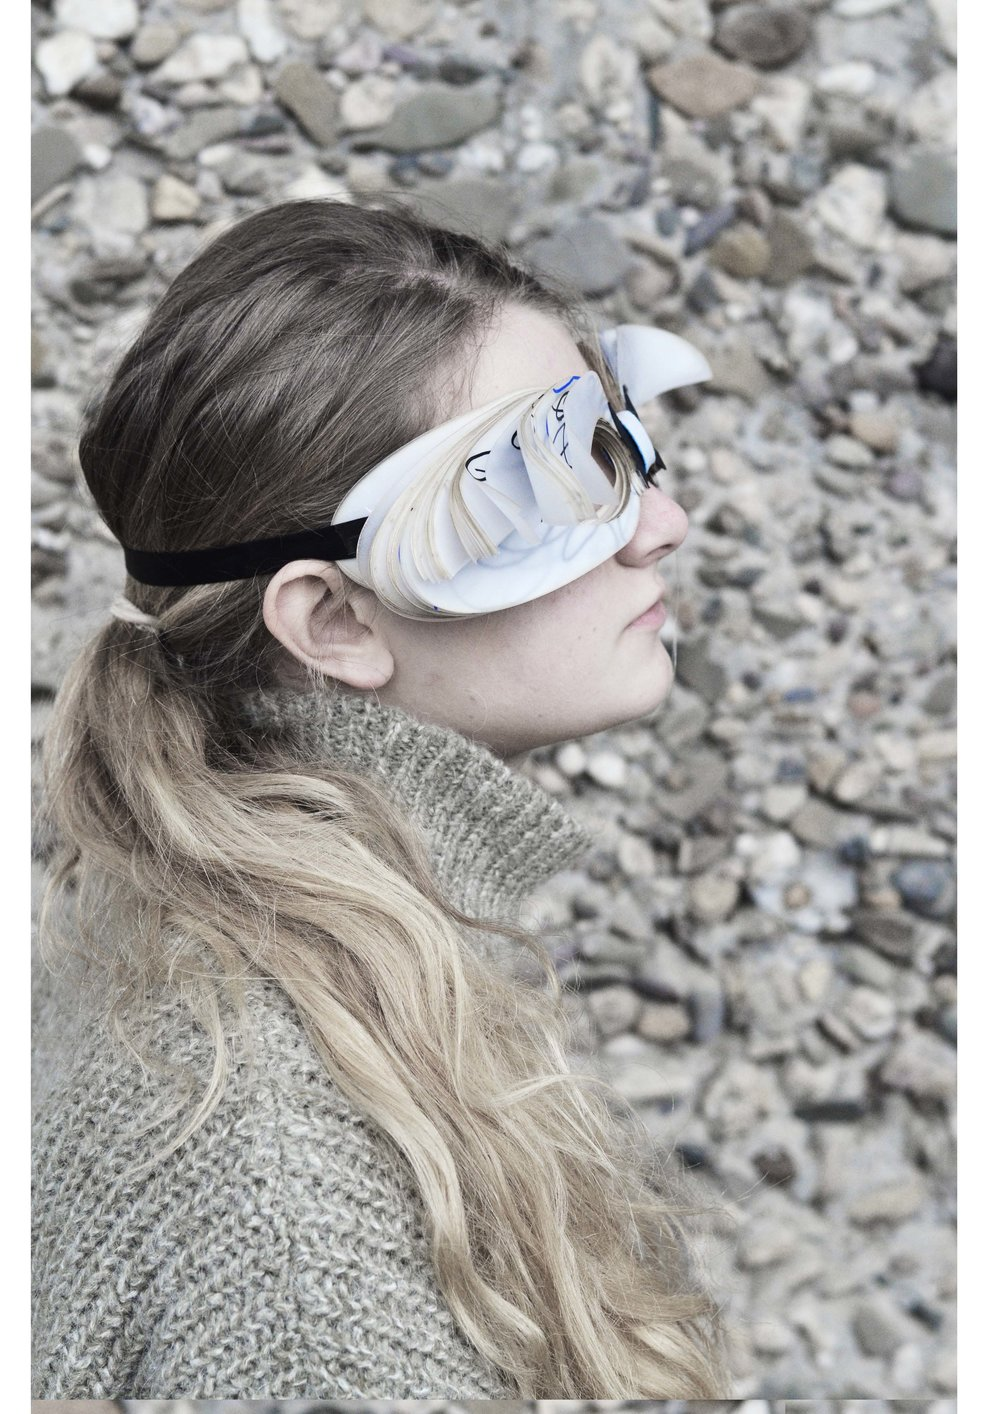 eyewear-collection-paper-robinpleun